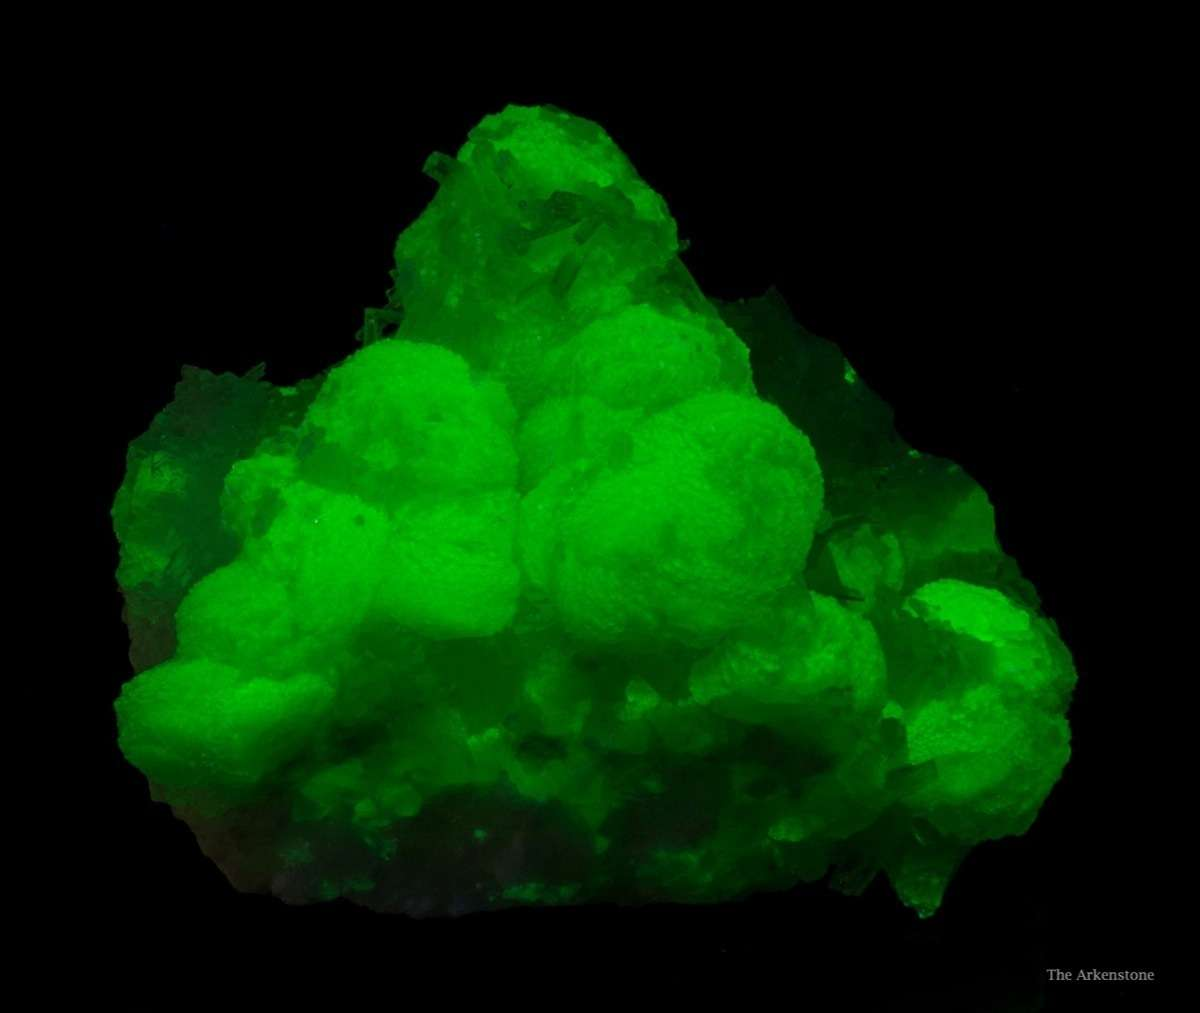 This special pocket intensely sparkling daiquiri colored adamite